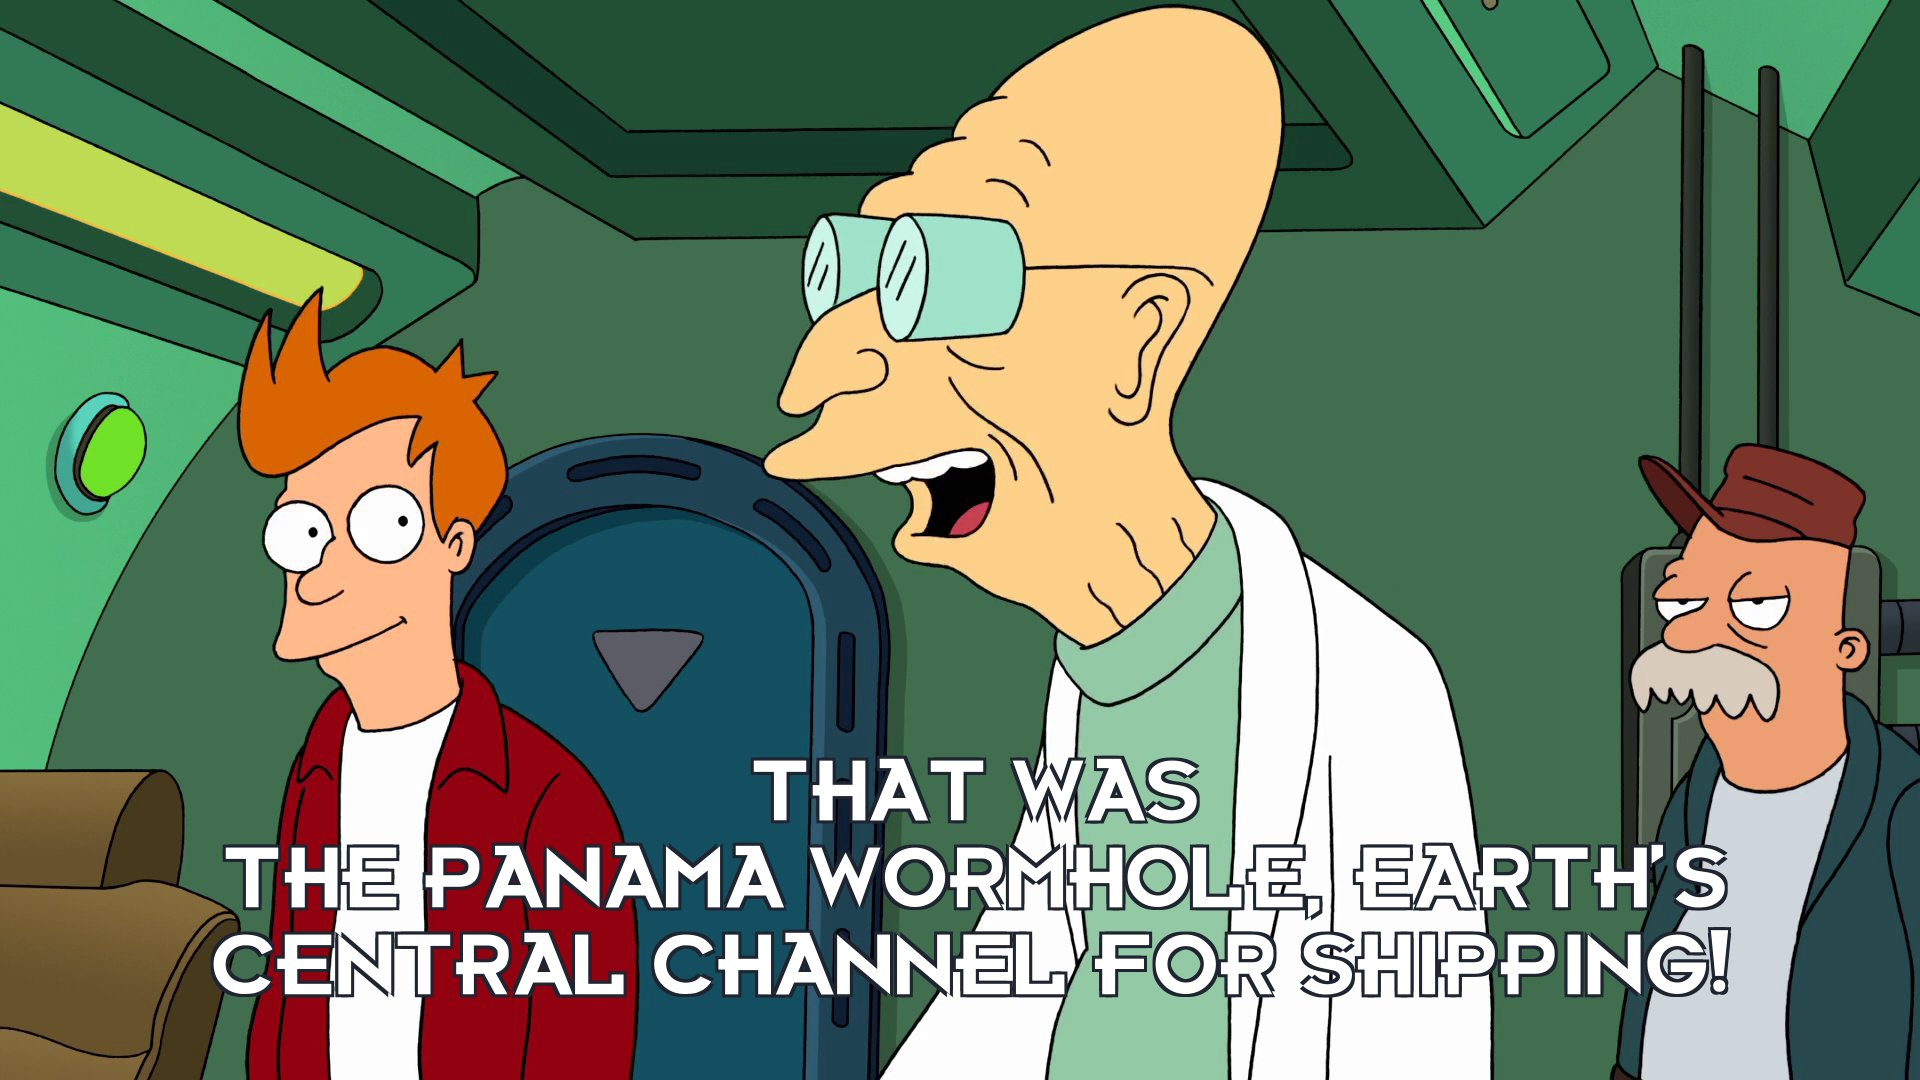 Prof Hubert J Farnsworth: That was the Panama Wormhole, Earth's central channel for shipping!